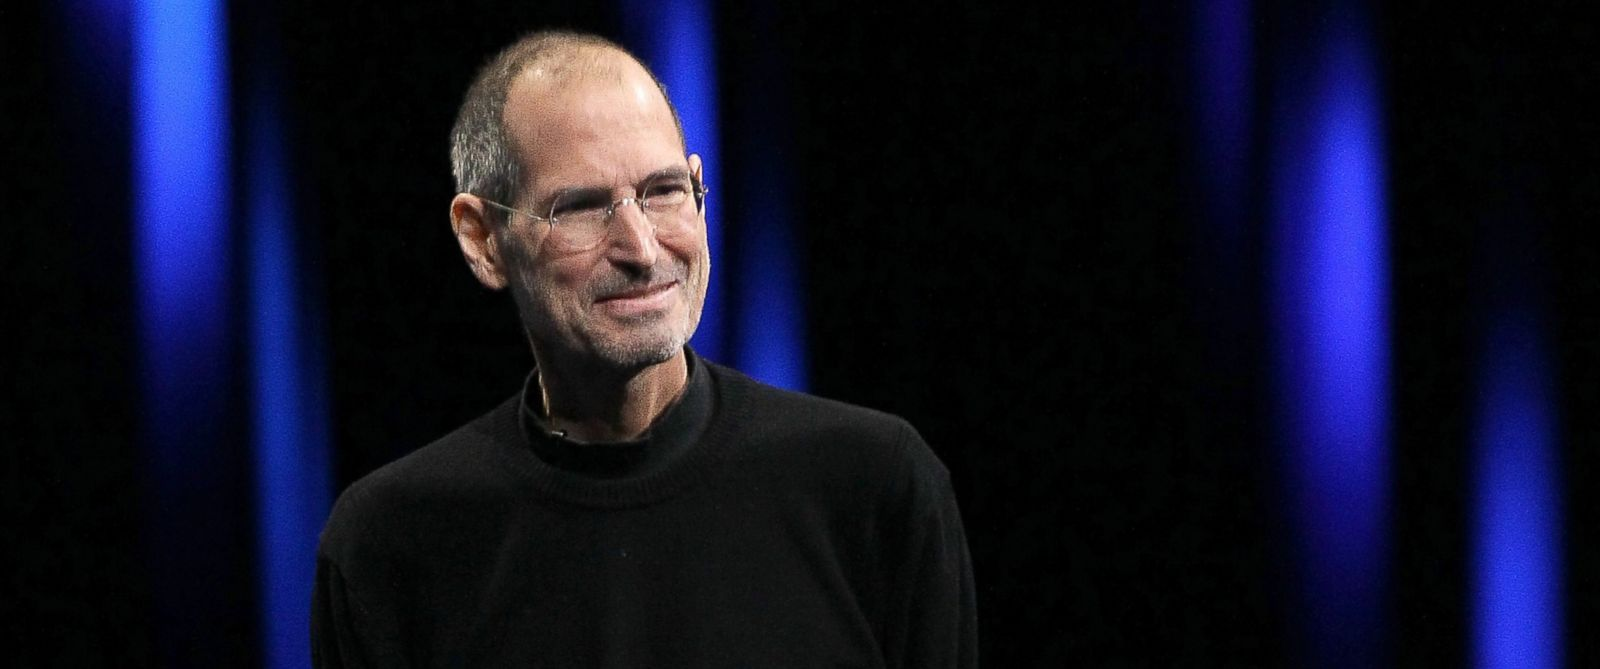 PHOTO: Apple CEO Steve Jobs delivers the keynote address at the 2011 Apple World Wide Developers Conference at the Moscone Center in this June 6, 2011, file photo.